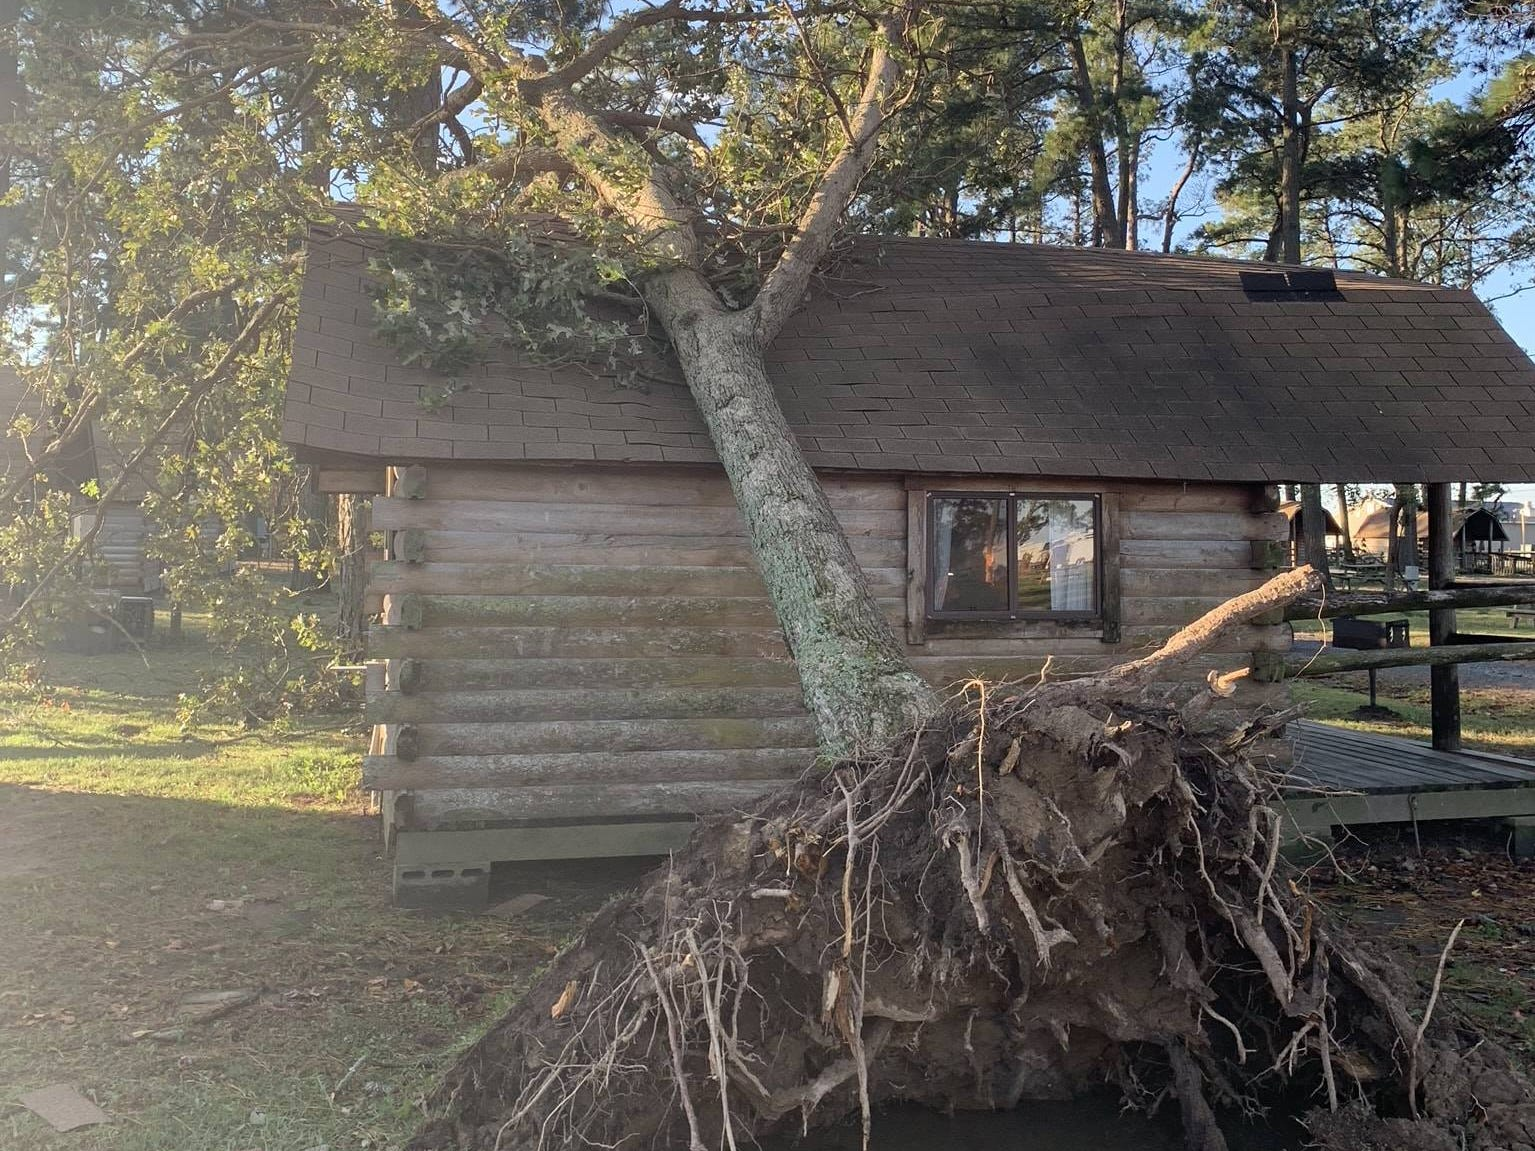 An uprooted tree lies on a cabin at the Cherrystone Family Camping Resort in Cape Charles.